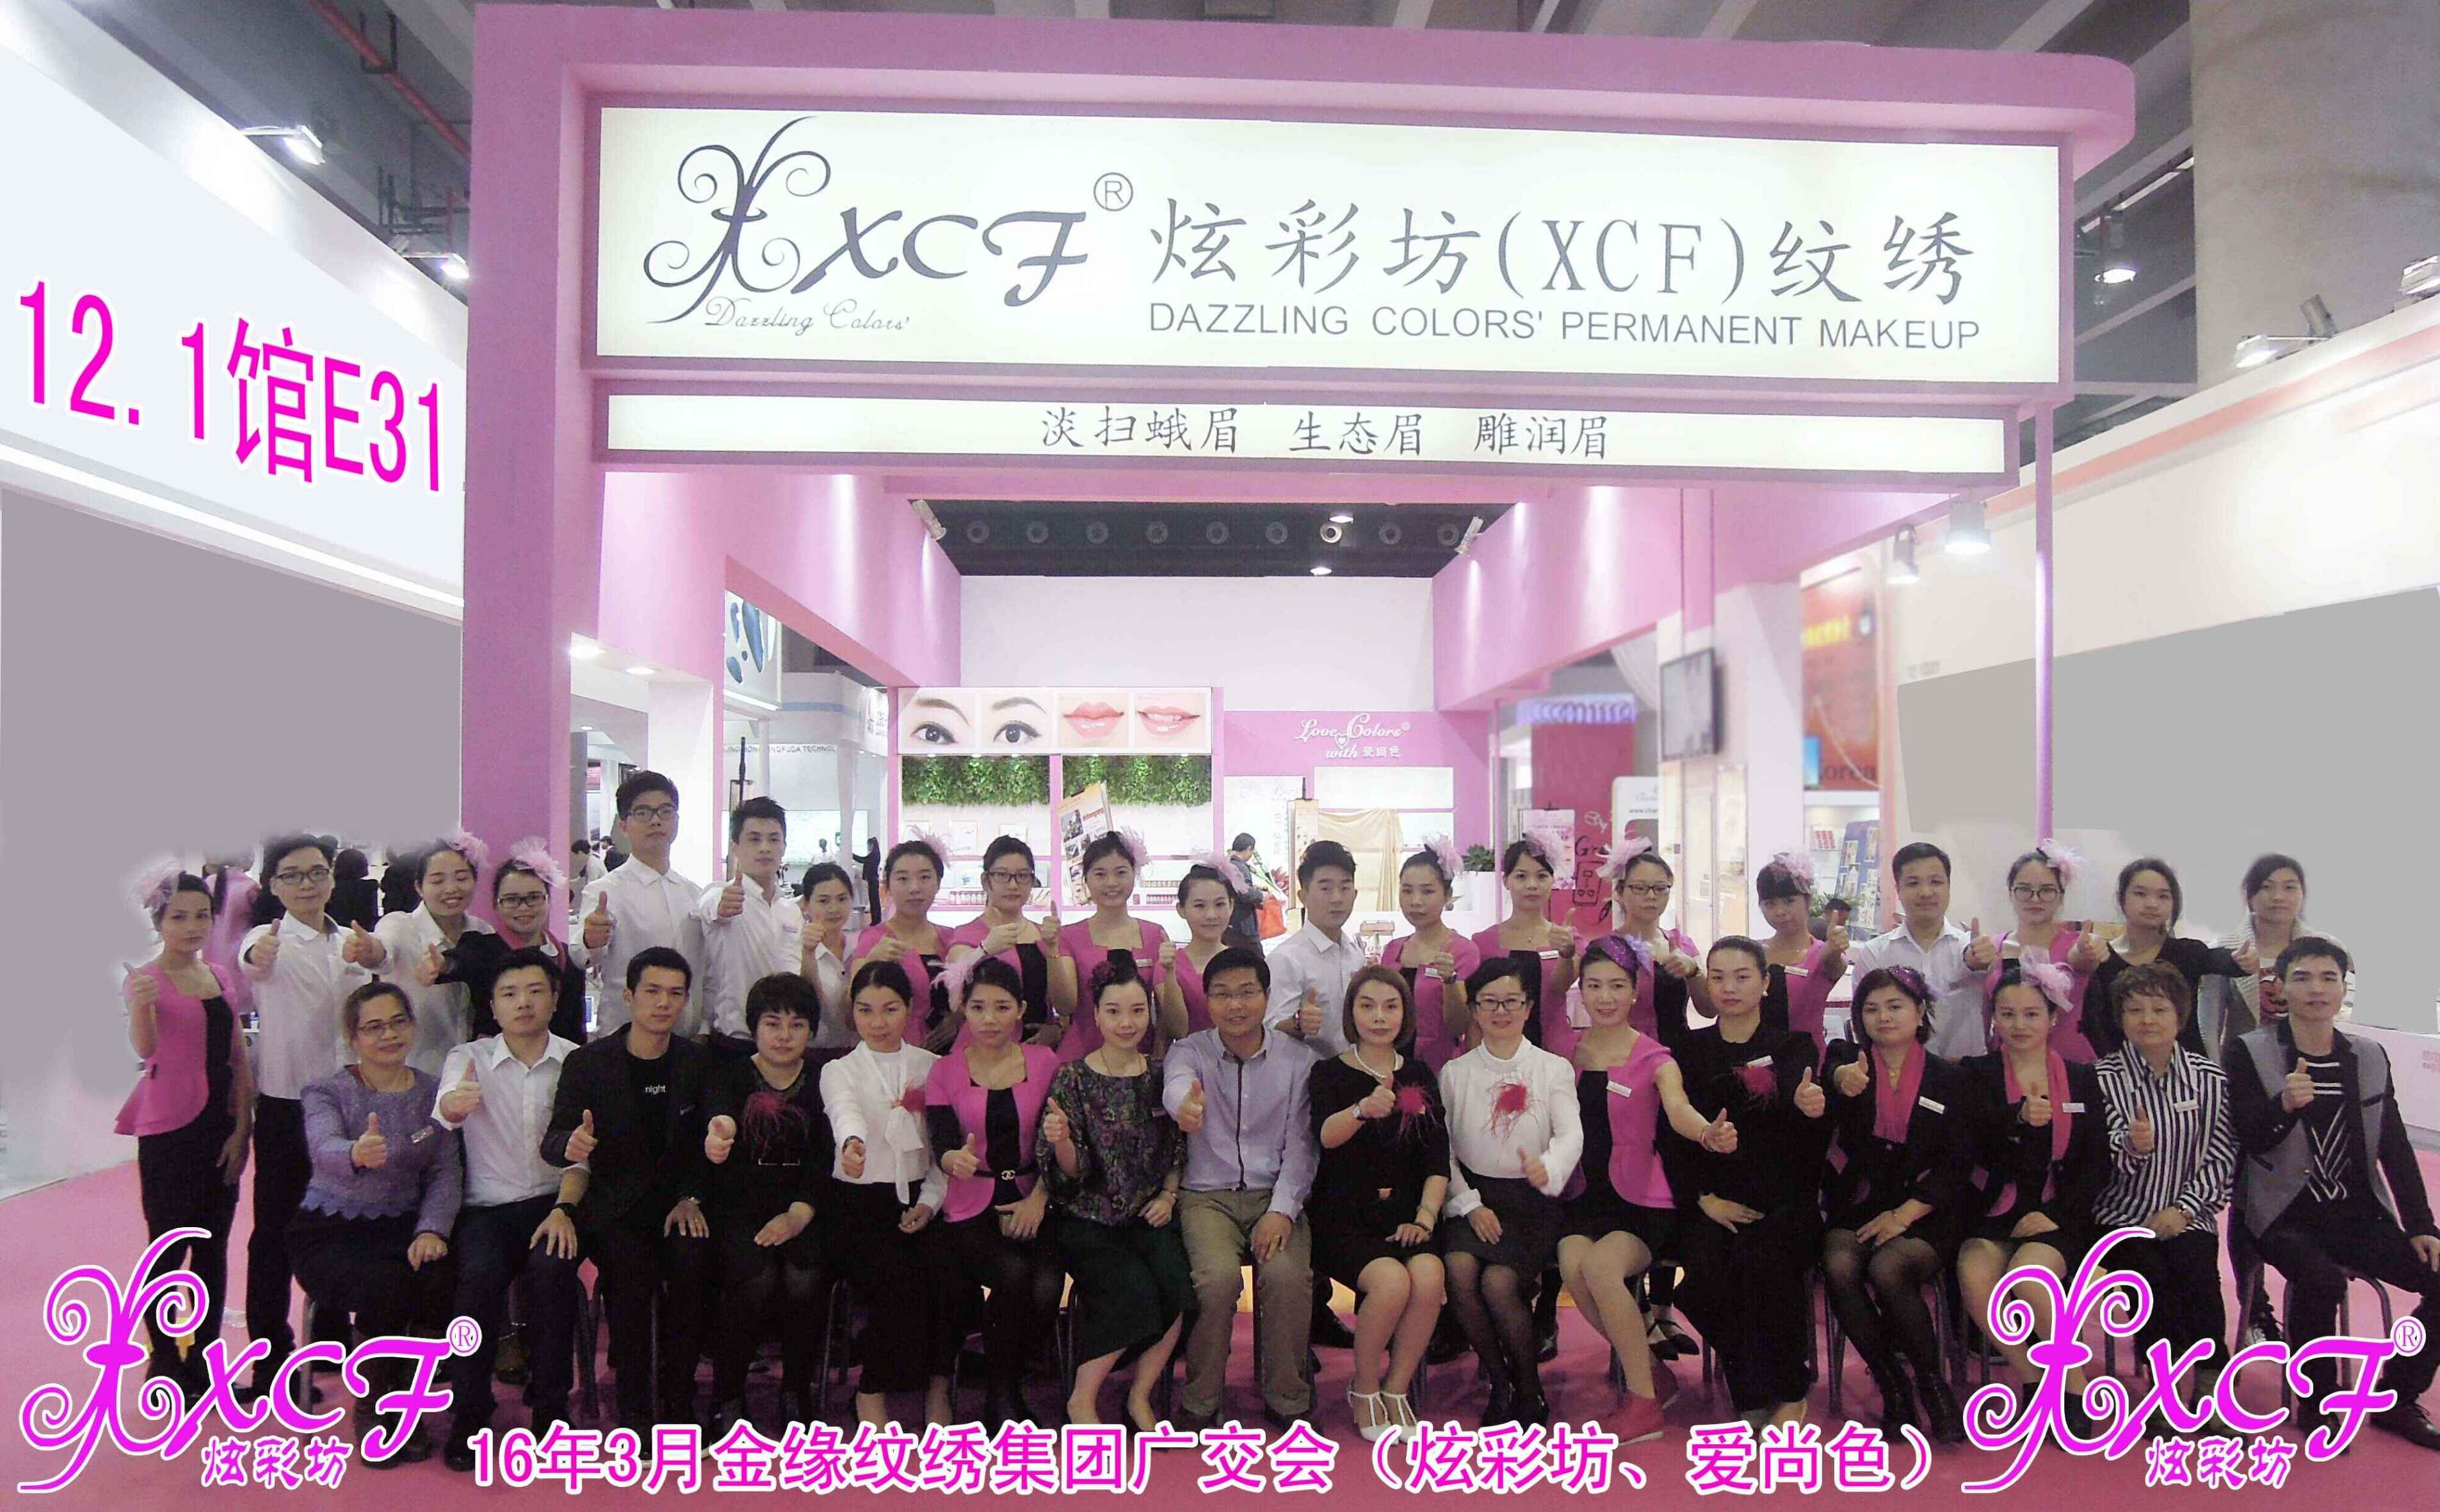 Dazzling Colors'(XCF) permanent makeup canton fair /international show